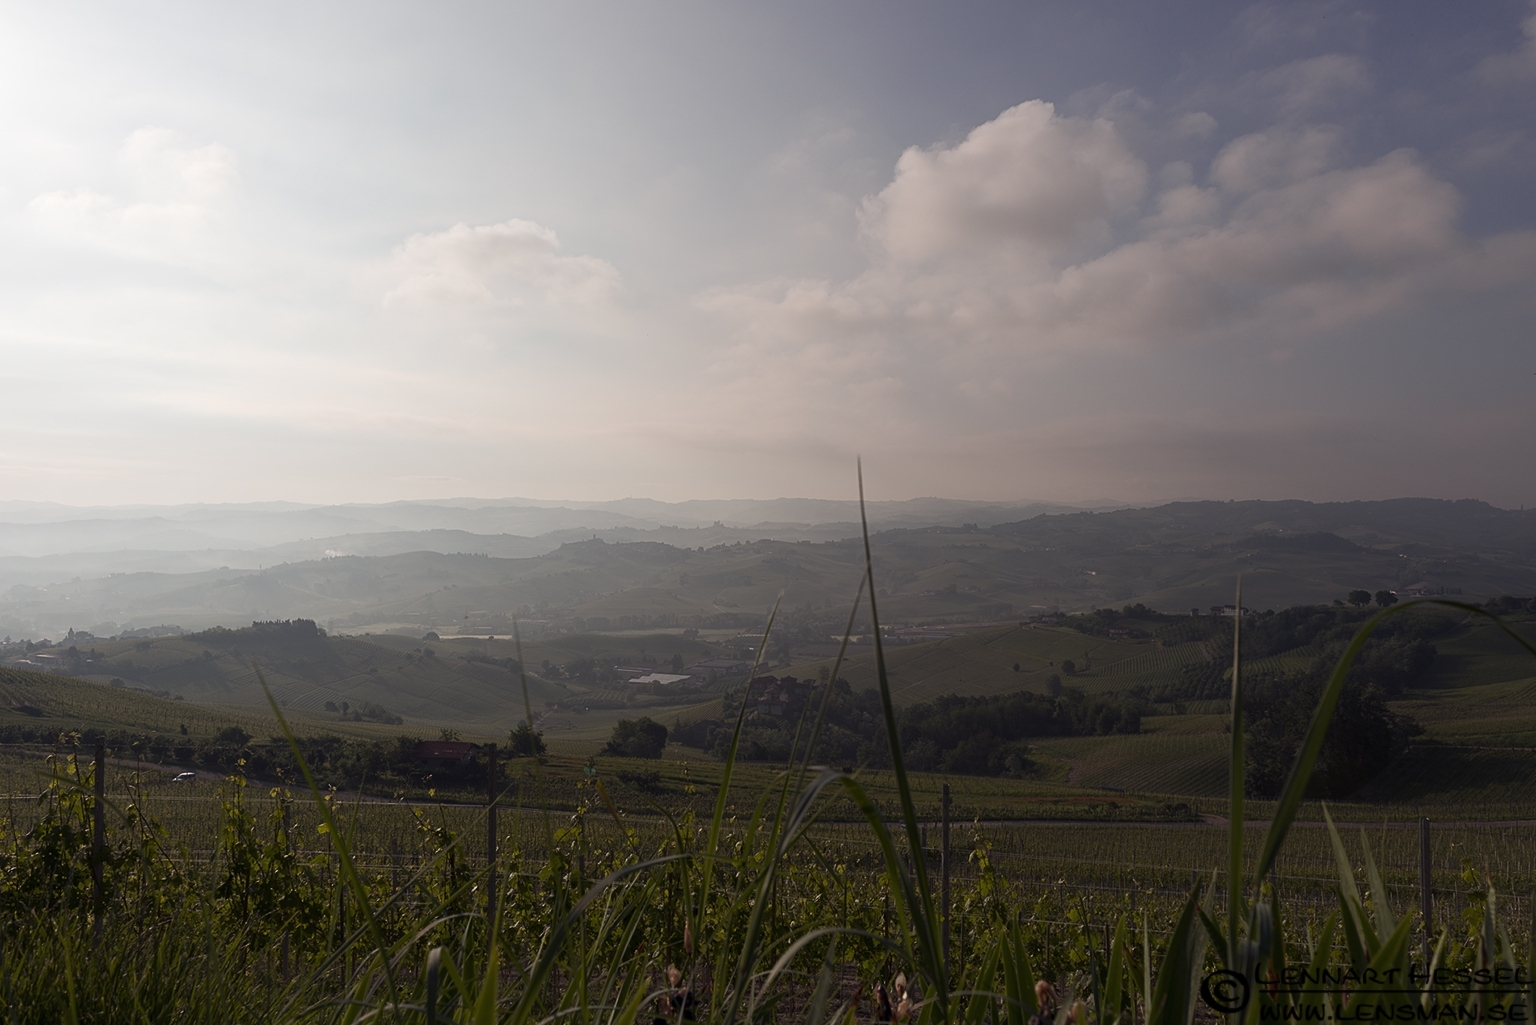 Morning view in Piedmont, Italy